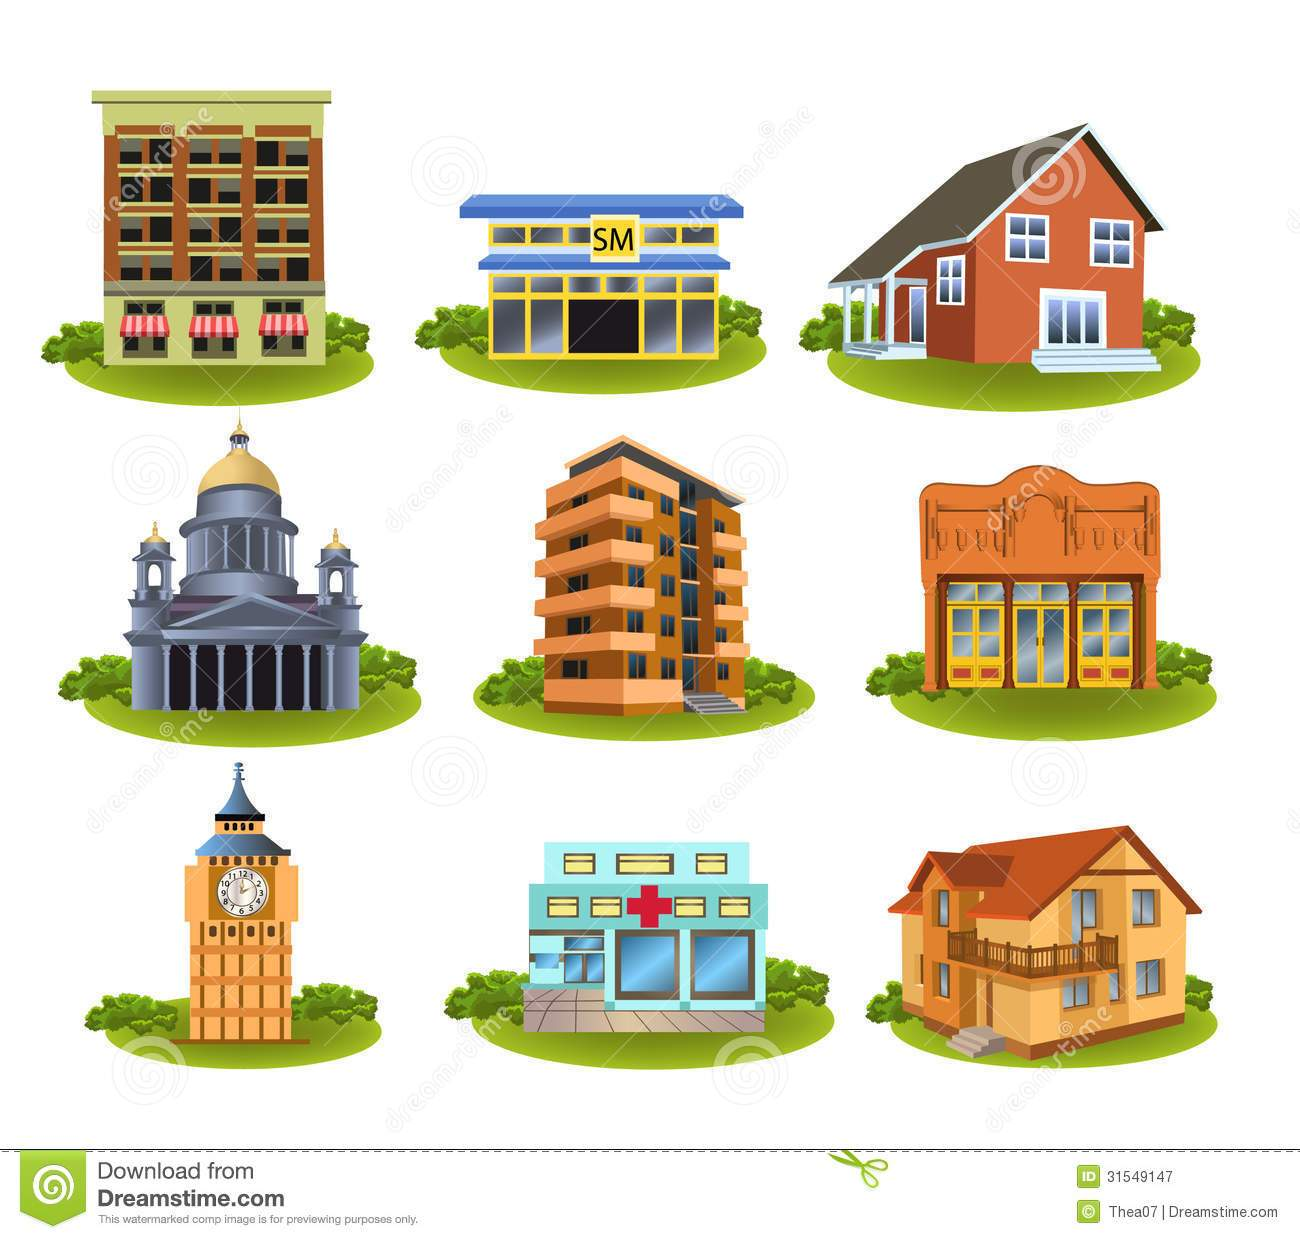 Placec clipart clipart freeuse download Pictures of different community places clipart 5 » Clipart ... clipart freeuse download